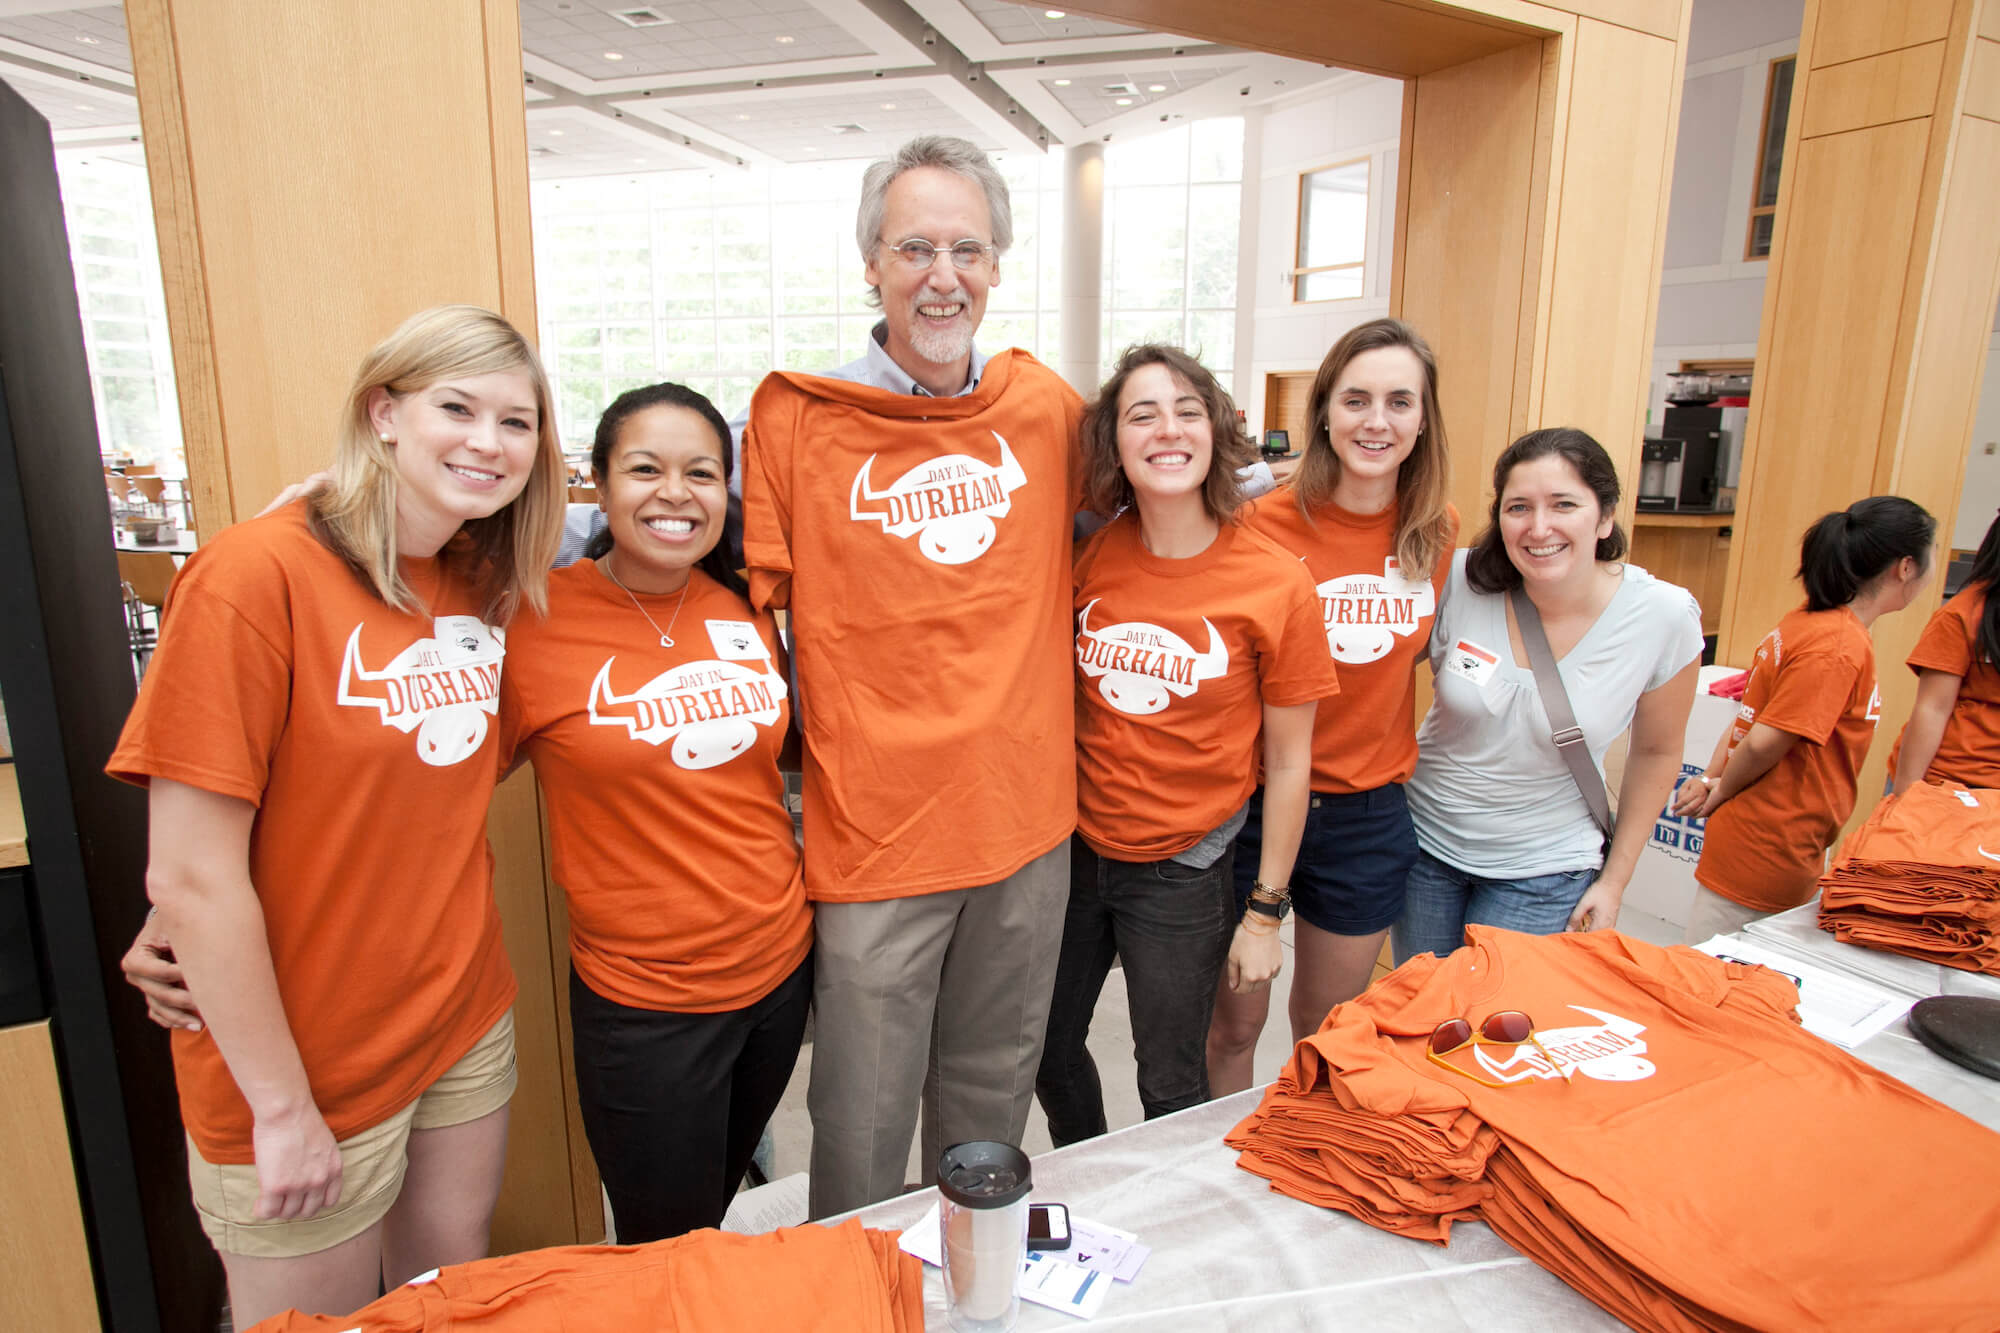 Bill Boulding and students with Durham t-shirts